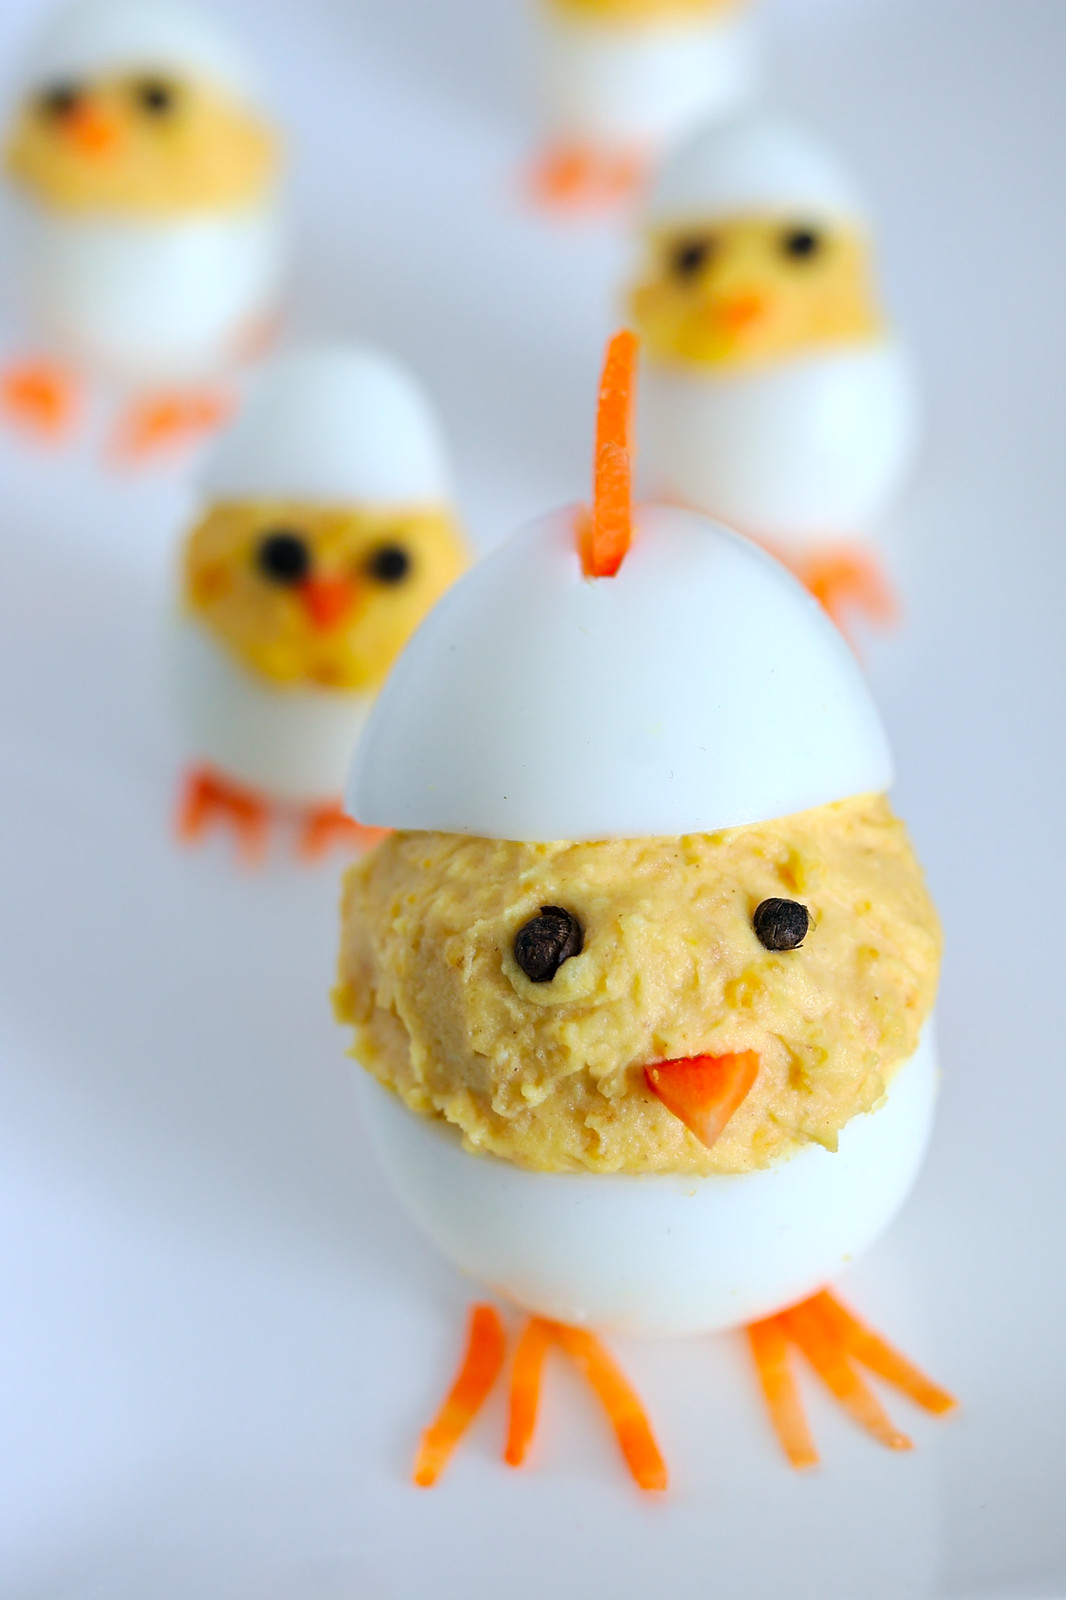 Deviled Easter egg chicks | Mother hen with baby chicks | platedpalate.com